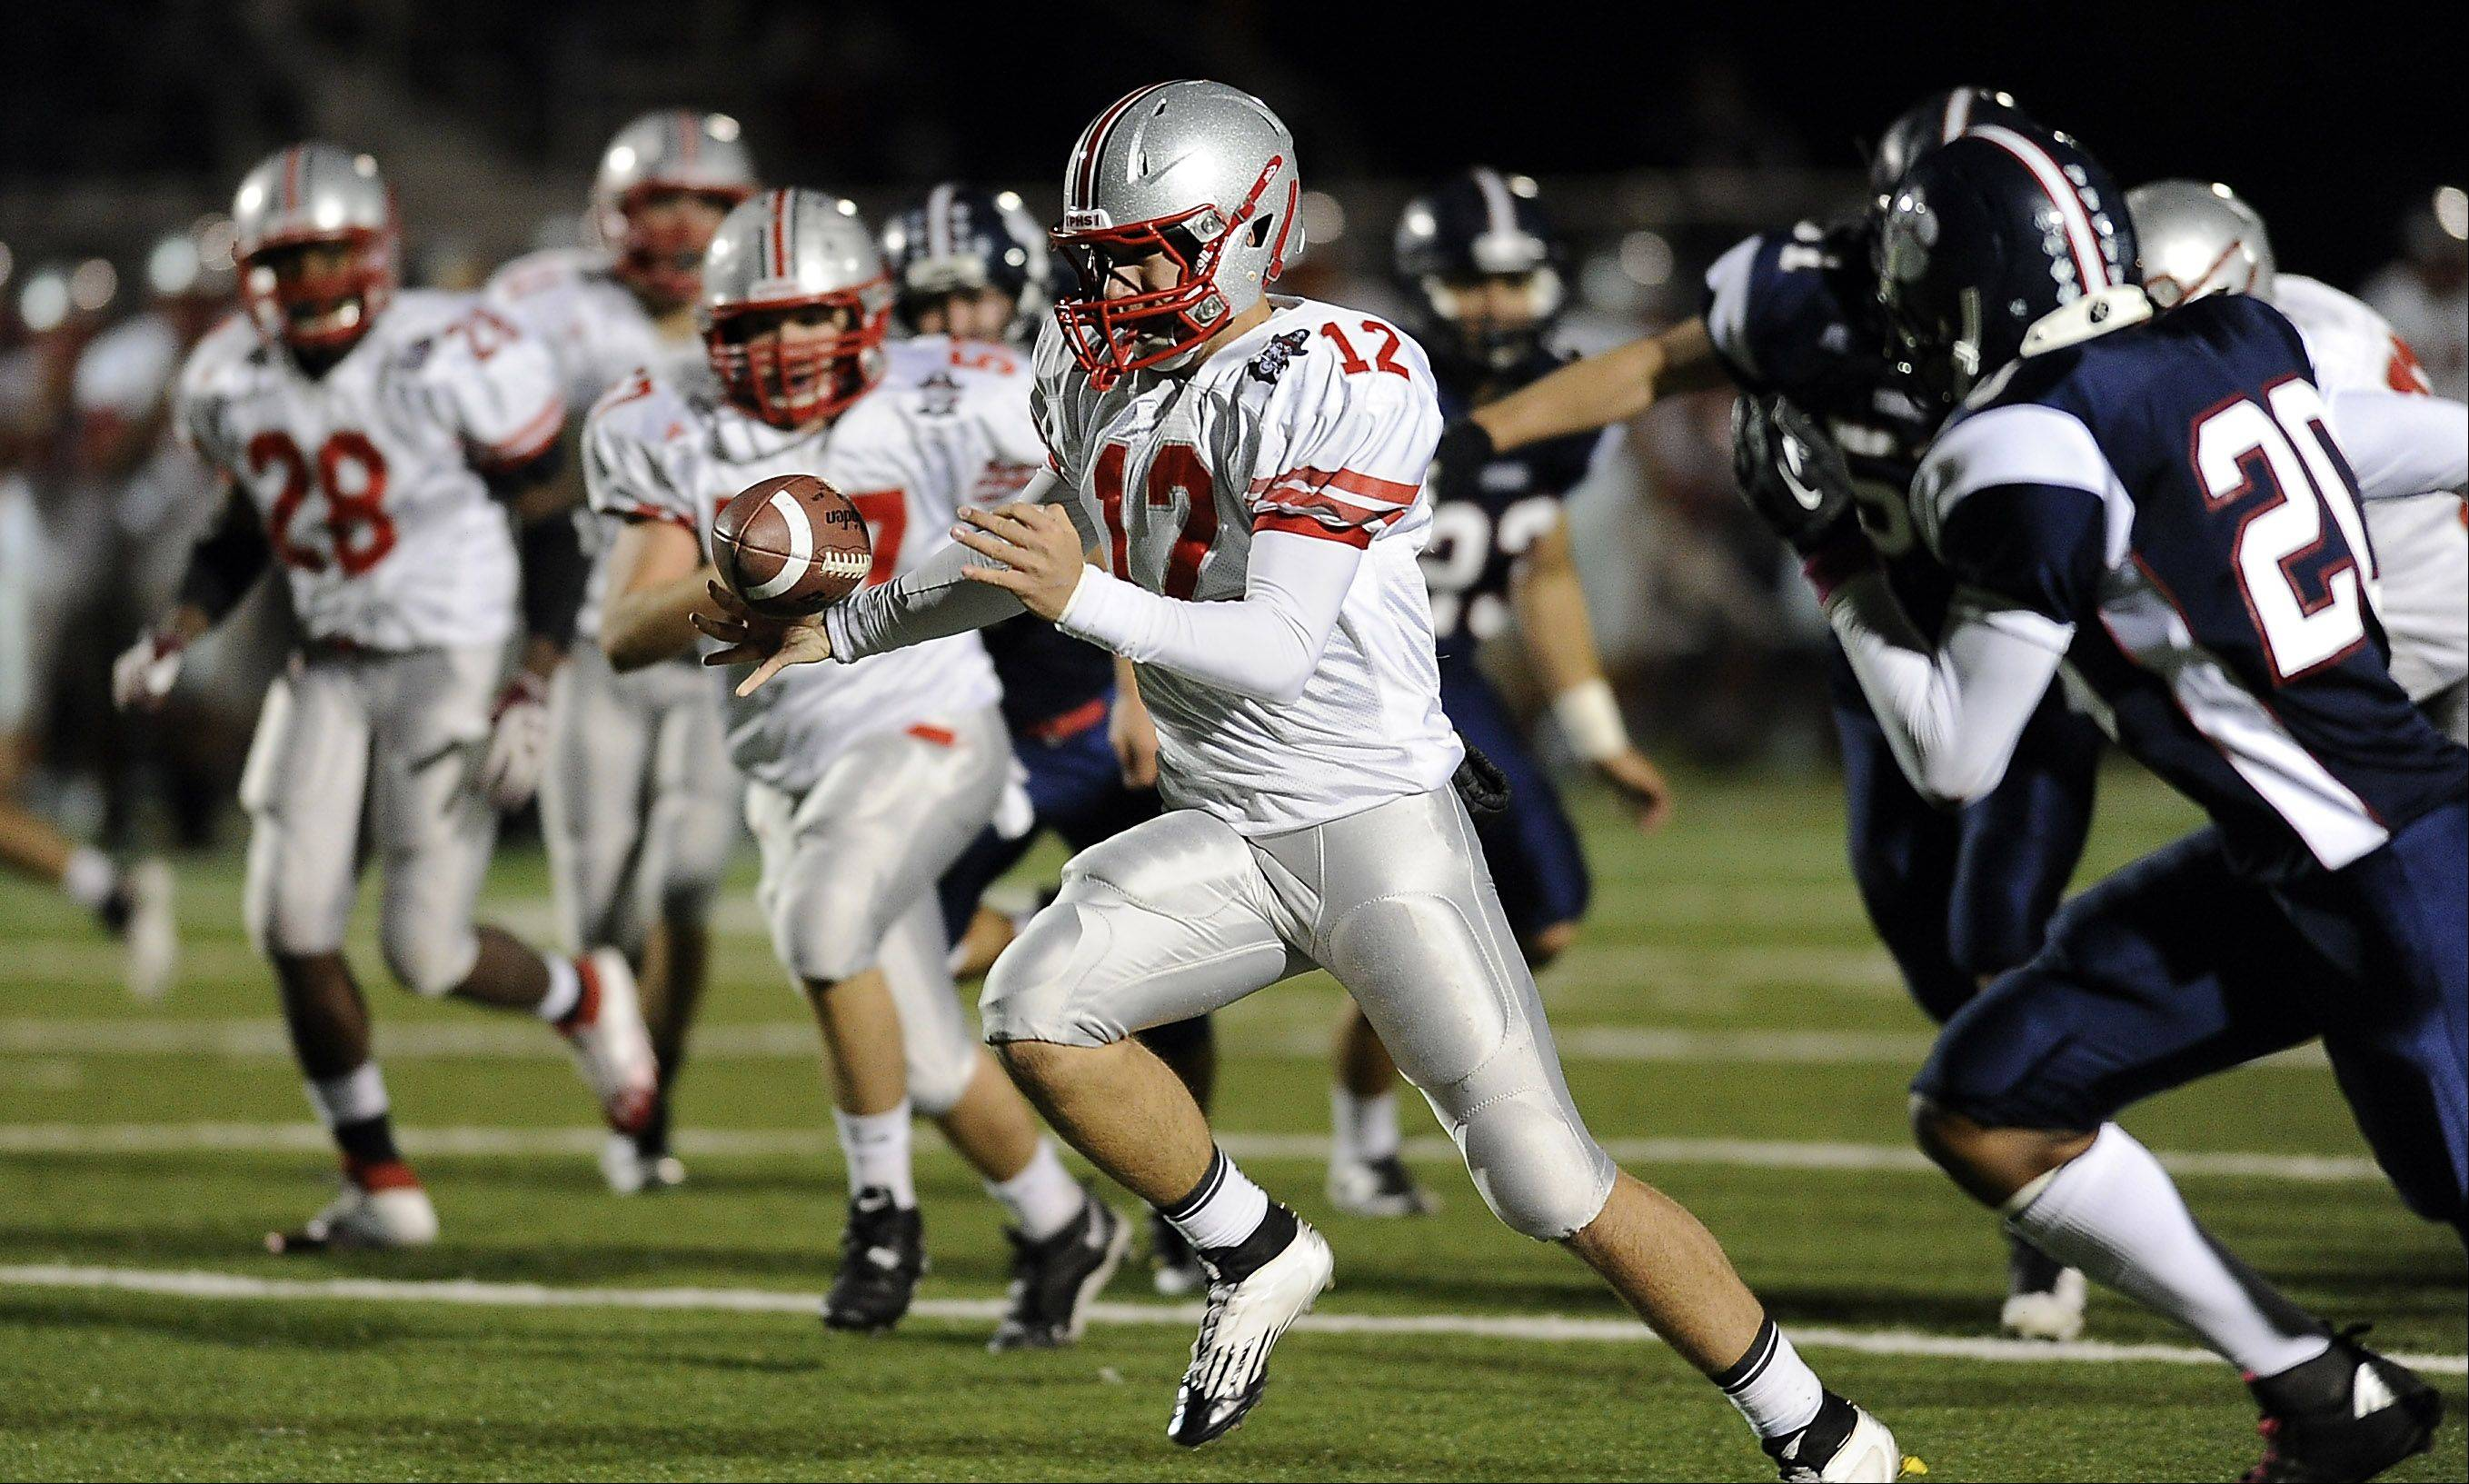 Palatine�s quarterback Ethan Olles tries to maintain control of the ball as he runs.